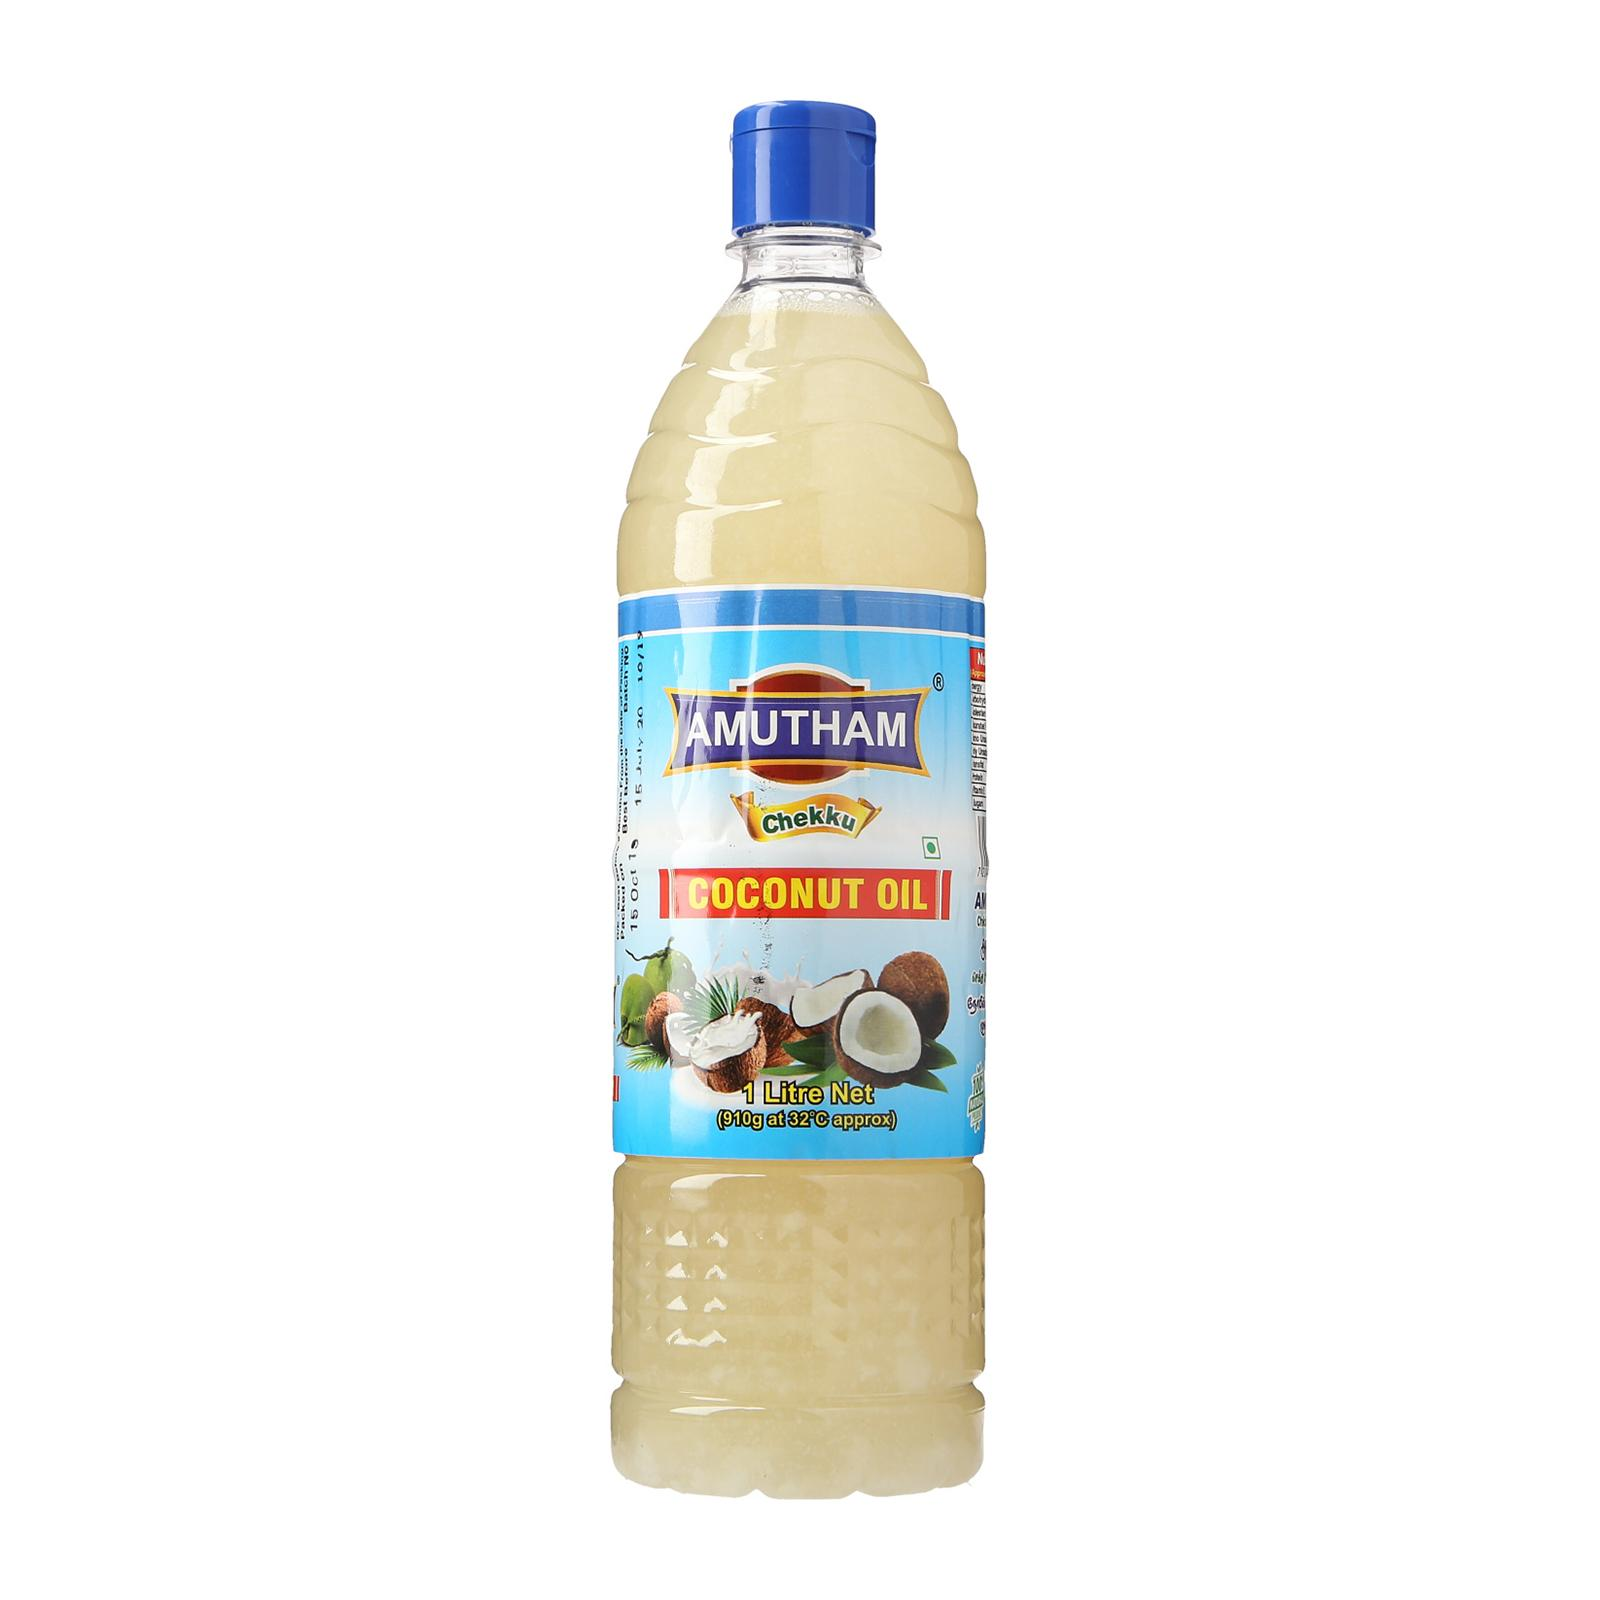 Amutham Chekku Cold Pressed Coconut Oil